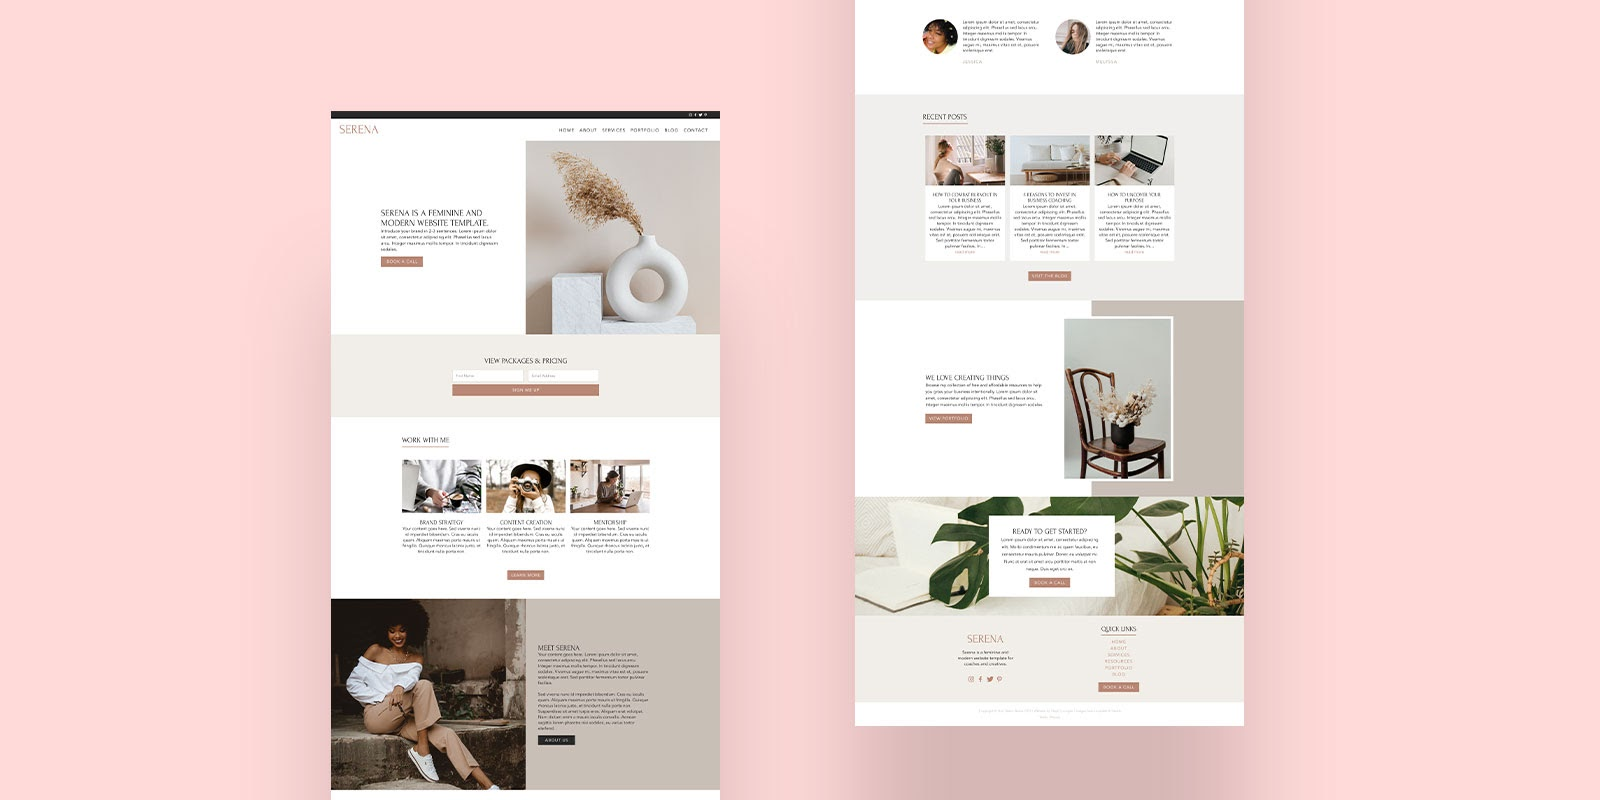 Example of a high-fidelity mockup created by Steph Corrigan Design